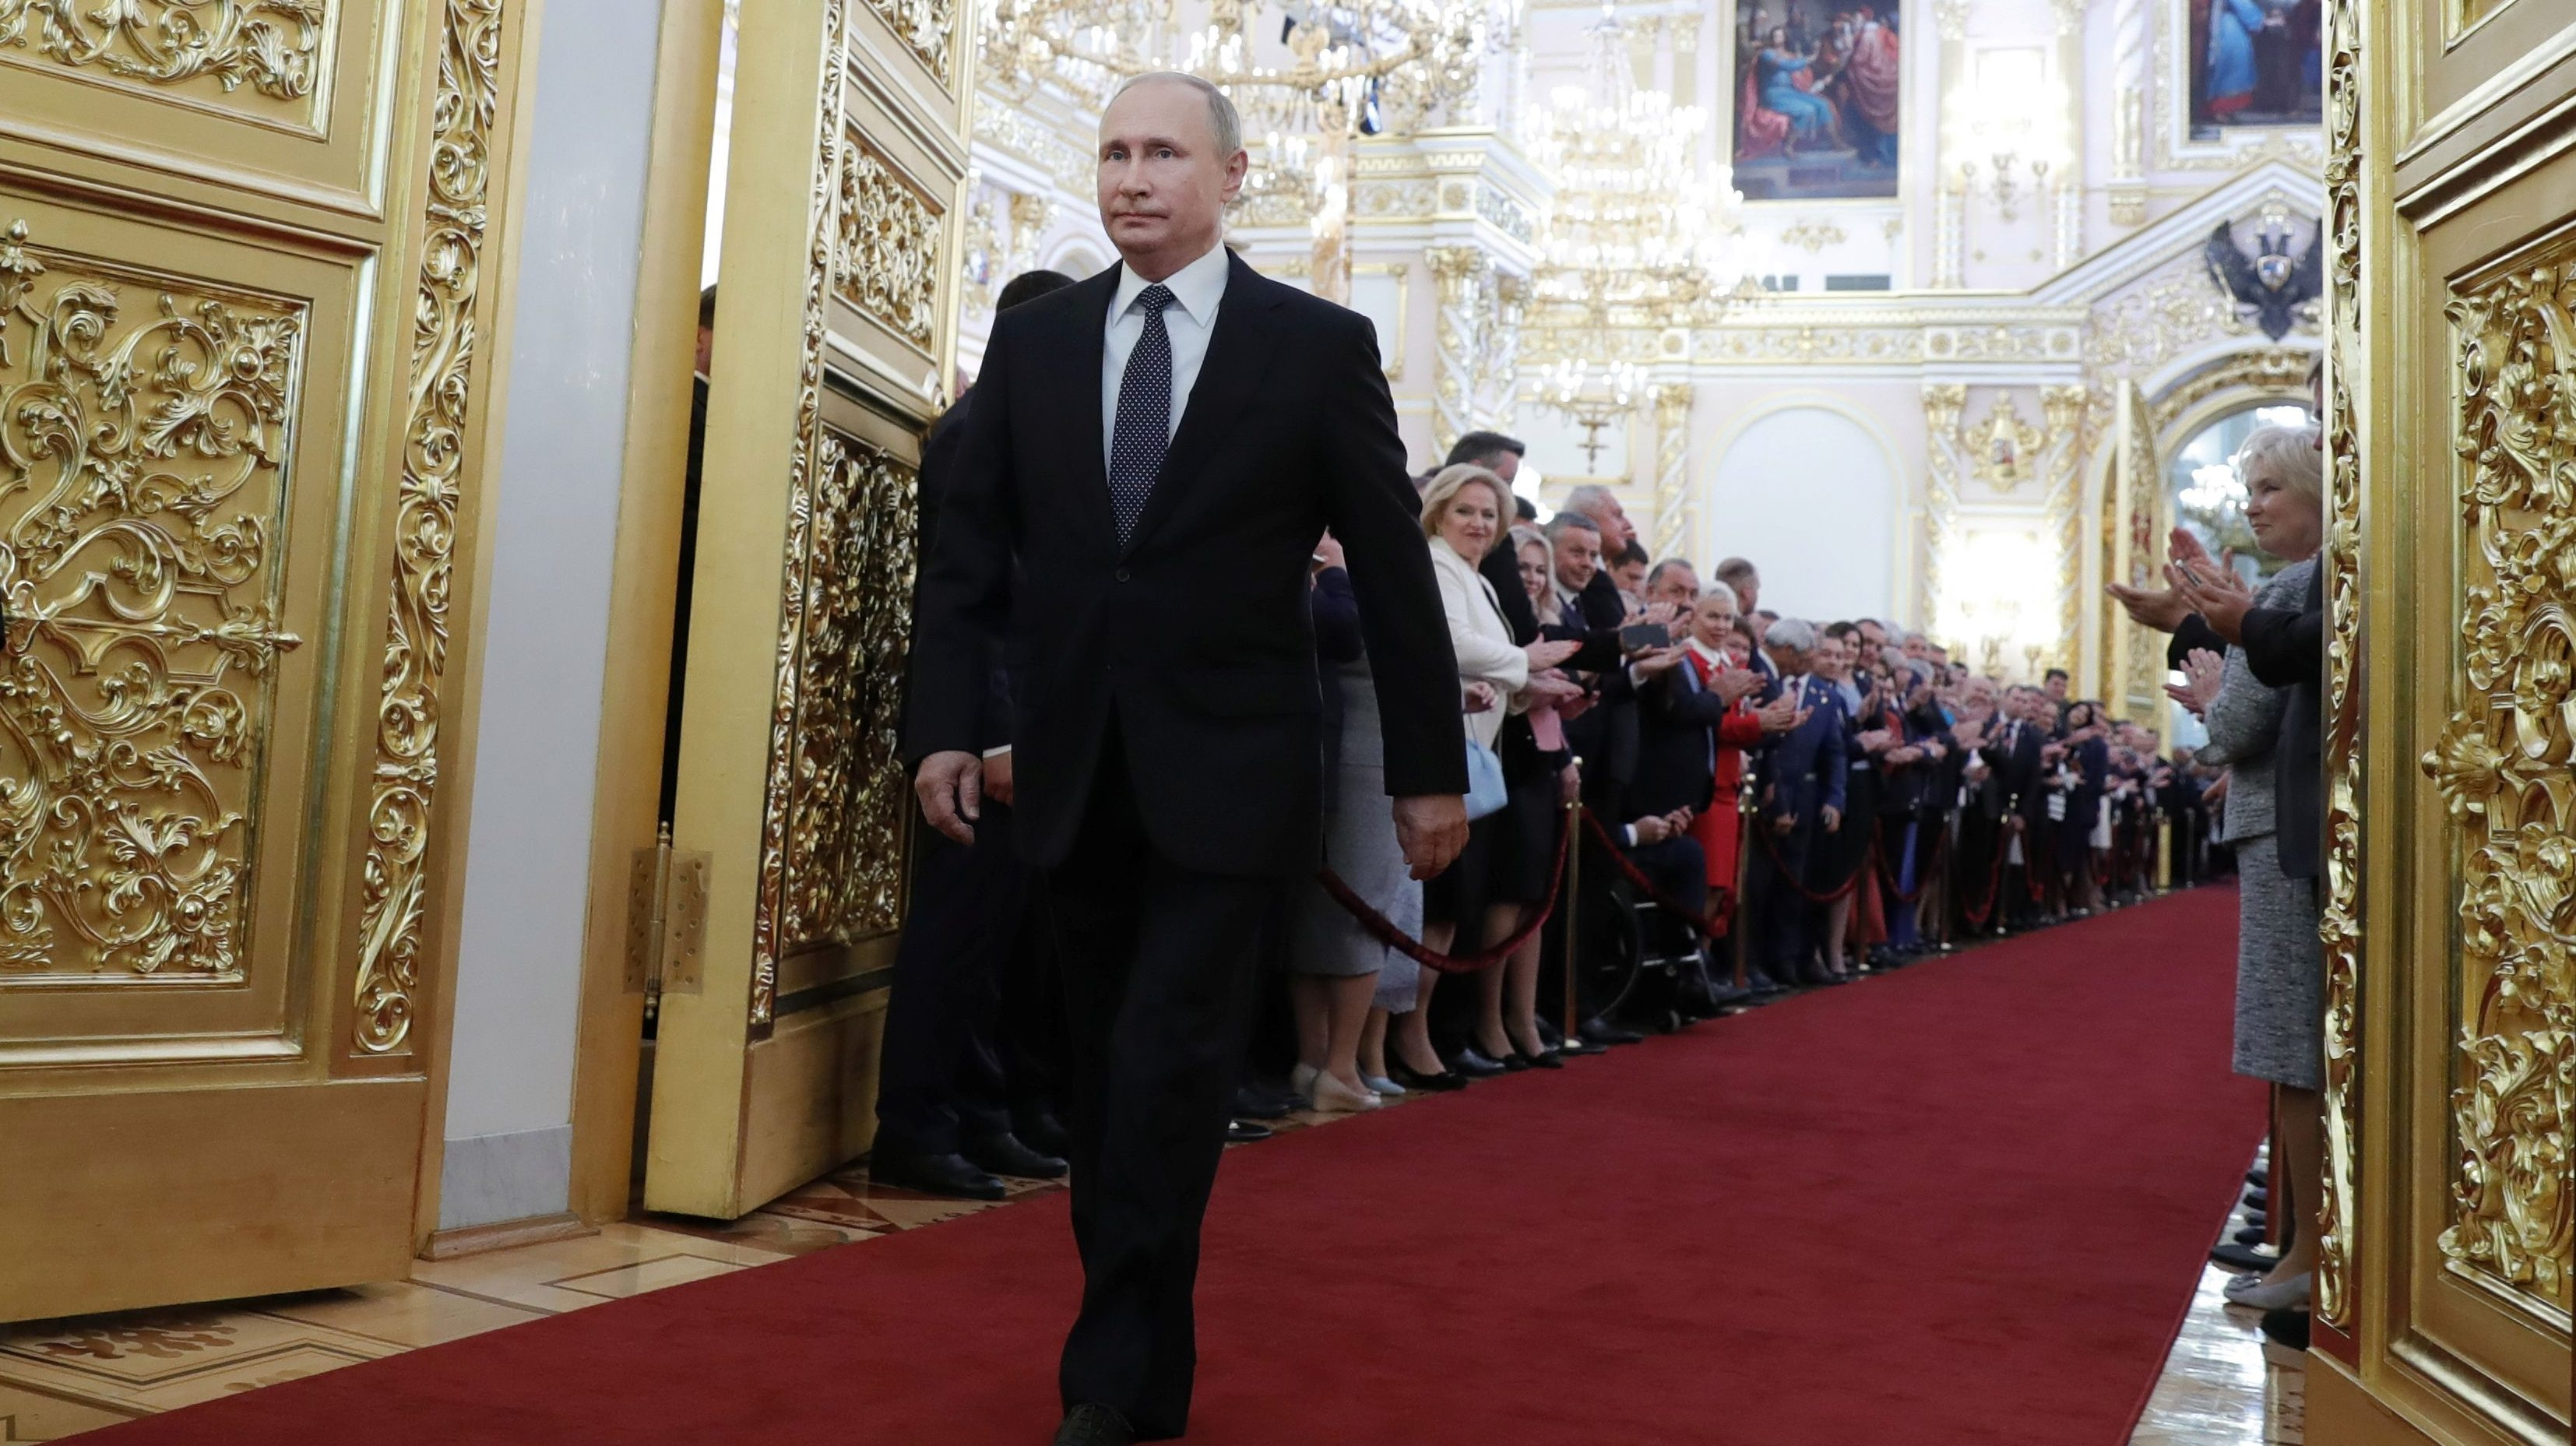 Russian President Vladimir Putin walks before an inauguration ceremony at the Kremlin in Moscow